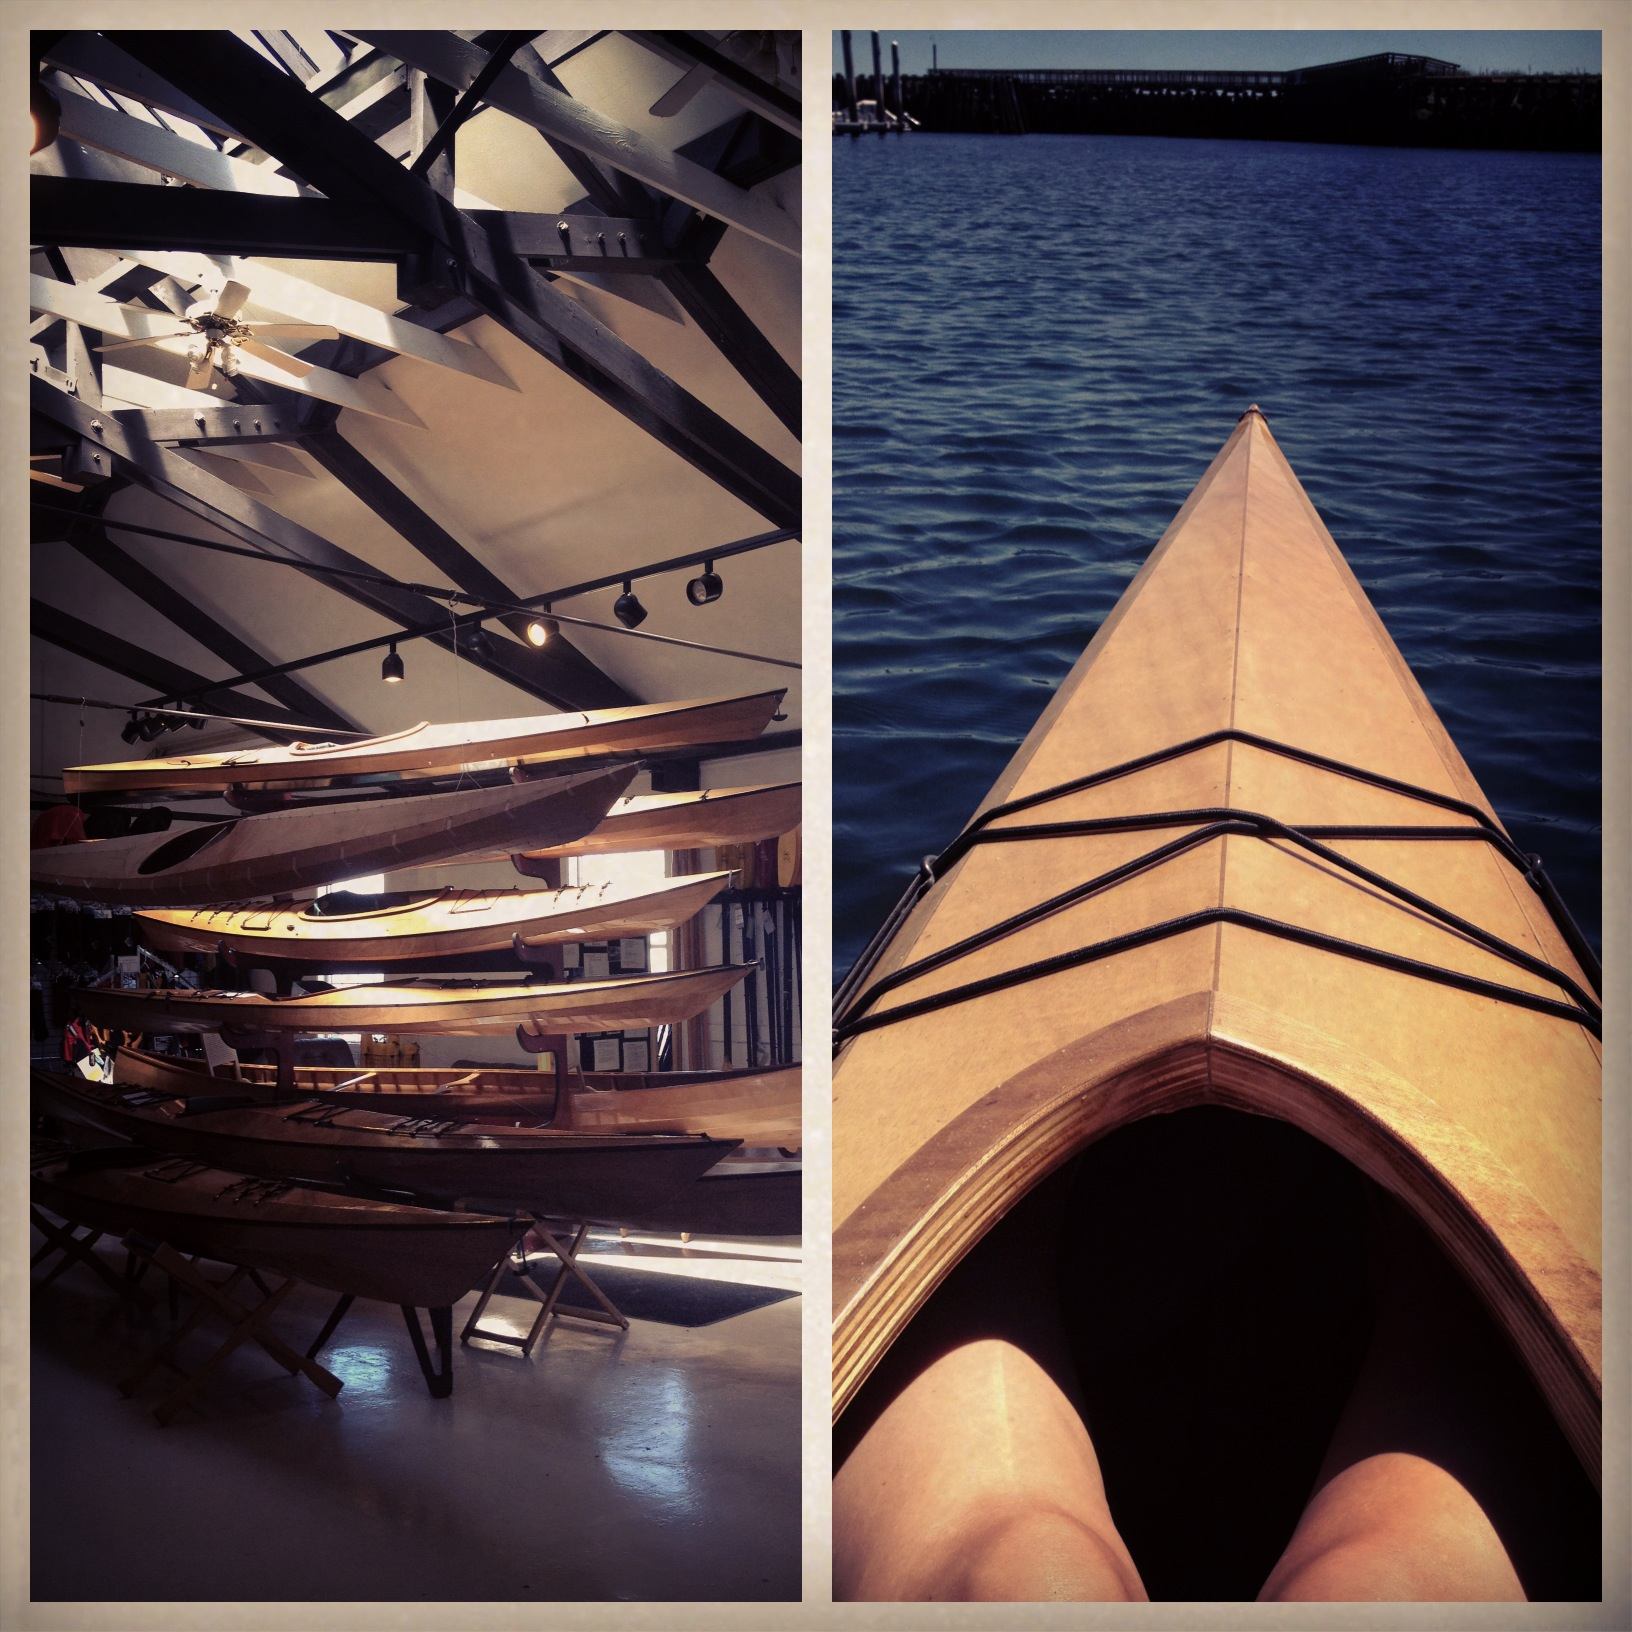 Pygmy kayak test run - Dave's building one this winter!